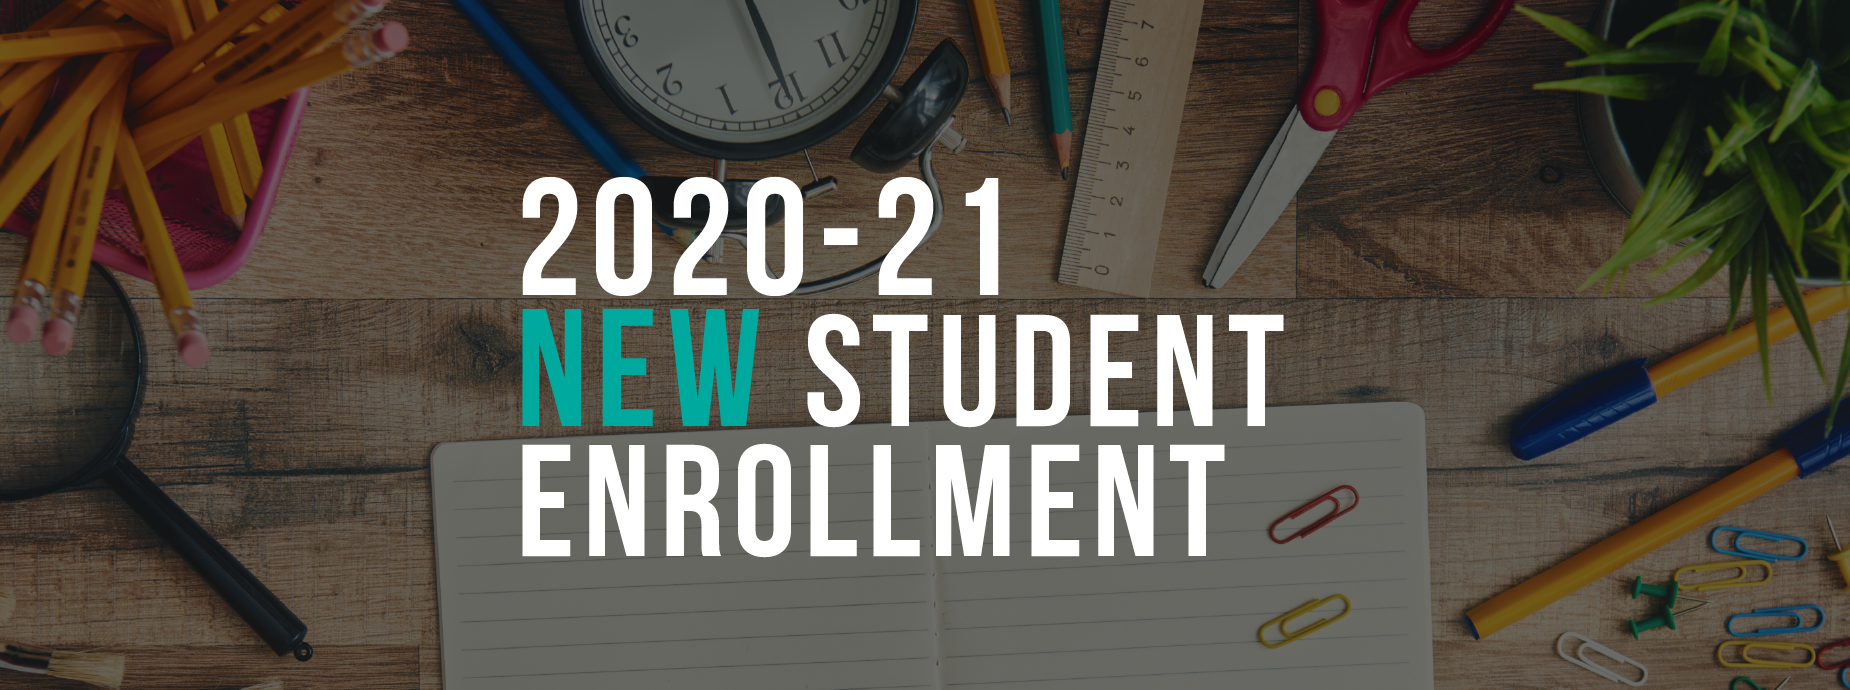 2020-21 New Student Enrollment